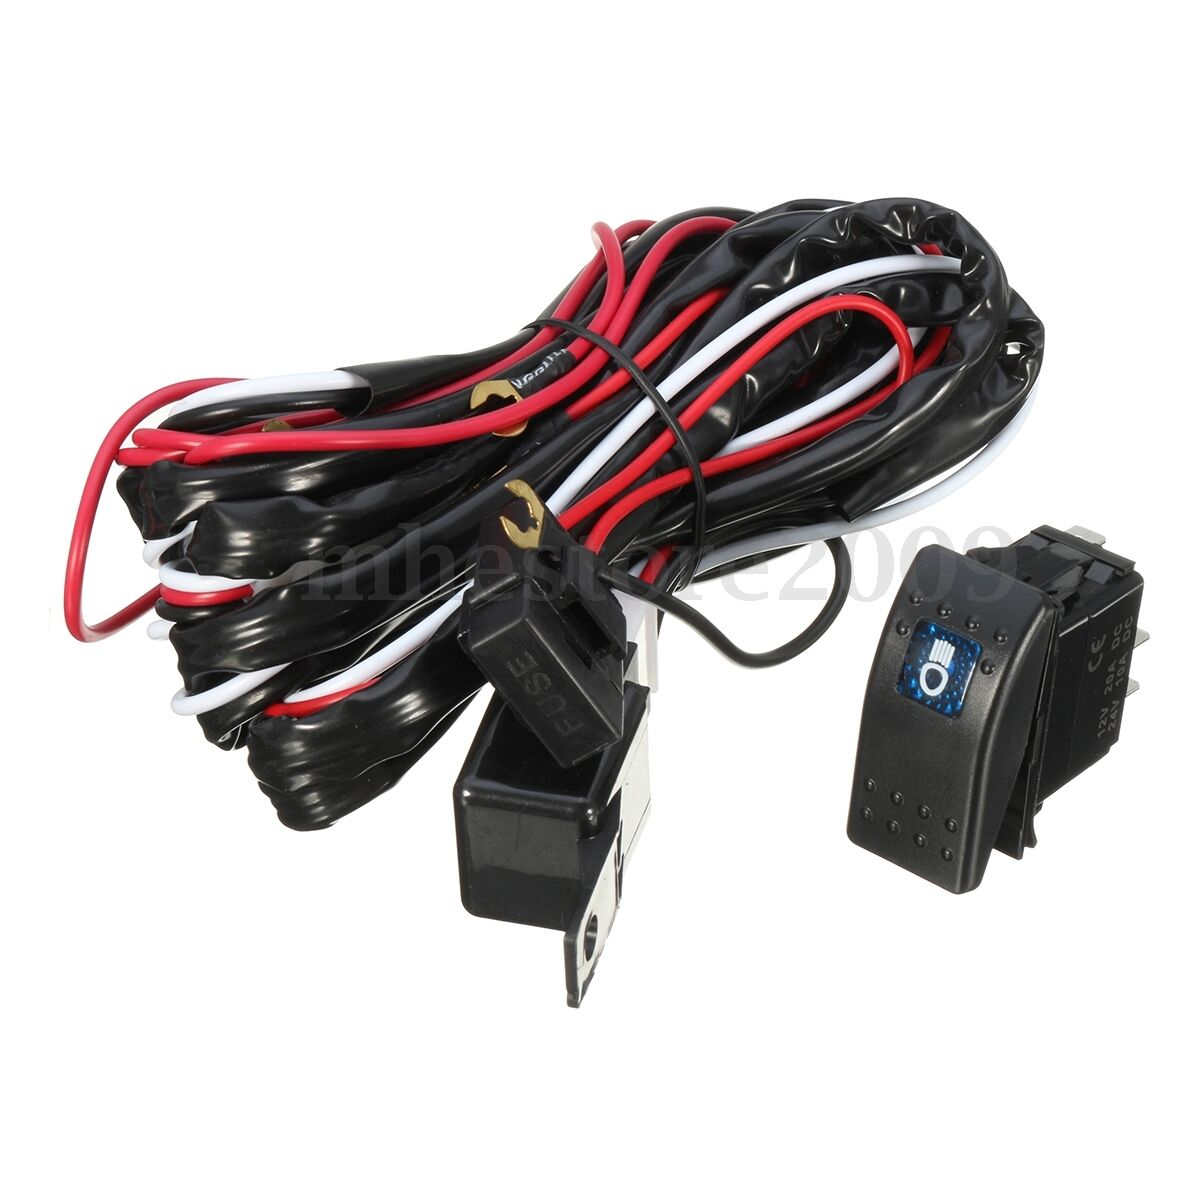 12v Wiring Harness Kit With Led High Beam Laser Rocker Switch Relay 24v Light Loom 40a For 2 1 Of 11only Available